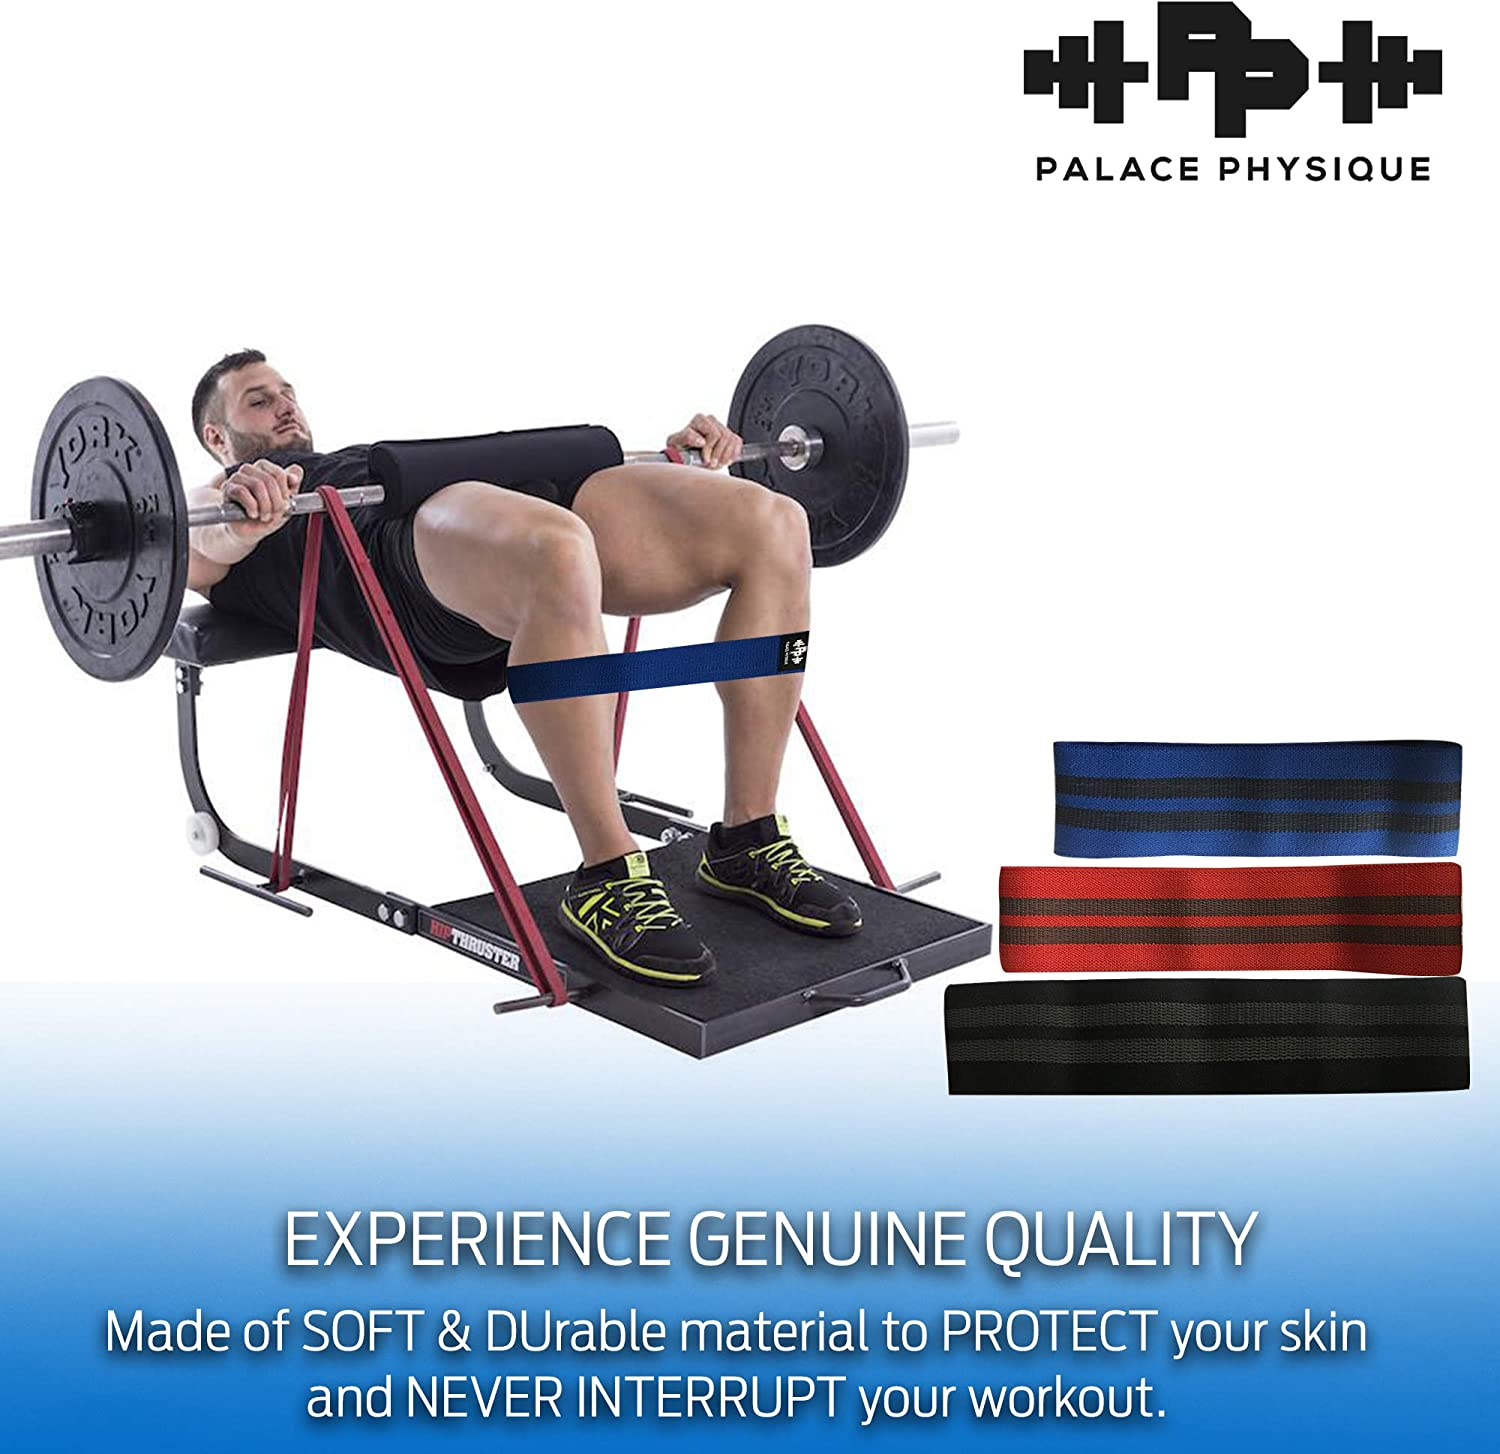 Palace Physique Ultimate Resistance Band for Leg,Thigh /& Glutes Training Portable /& Heavy-Duty Home Gym Accessory for Women /& Men|Strengthens Legs /& Butt Nonslip /& Soft Quads Exercise Band